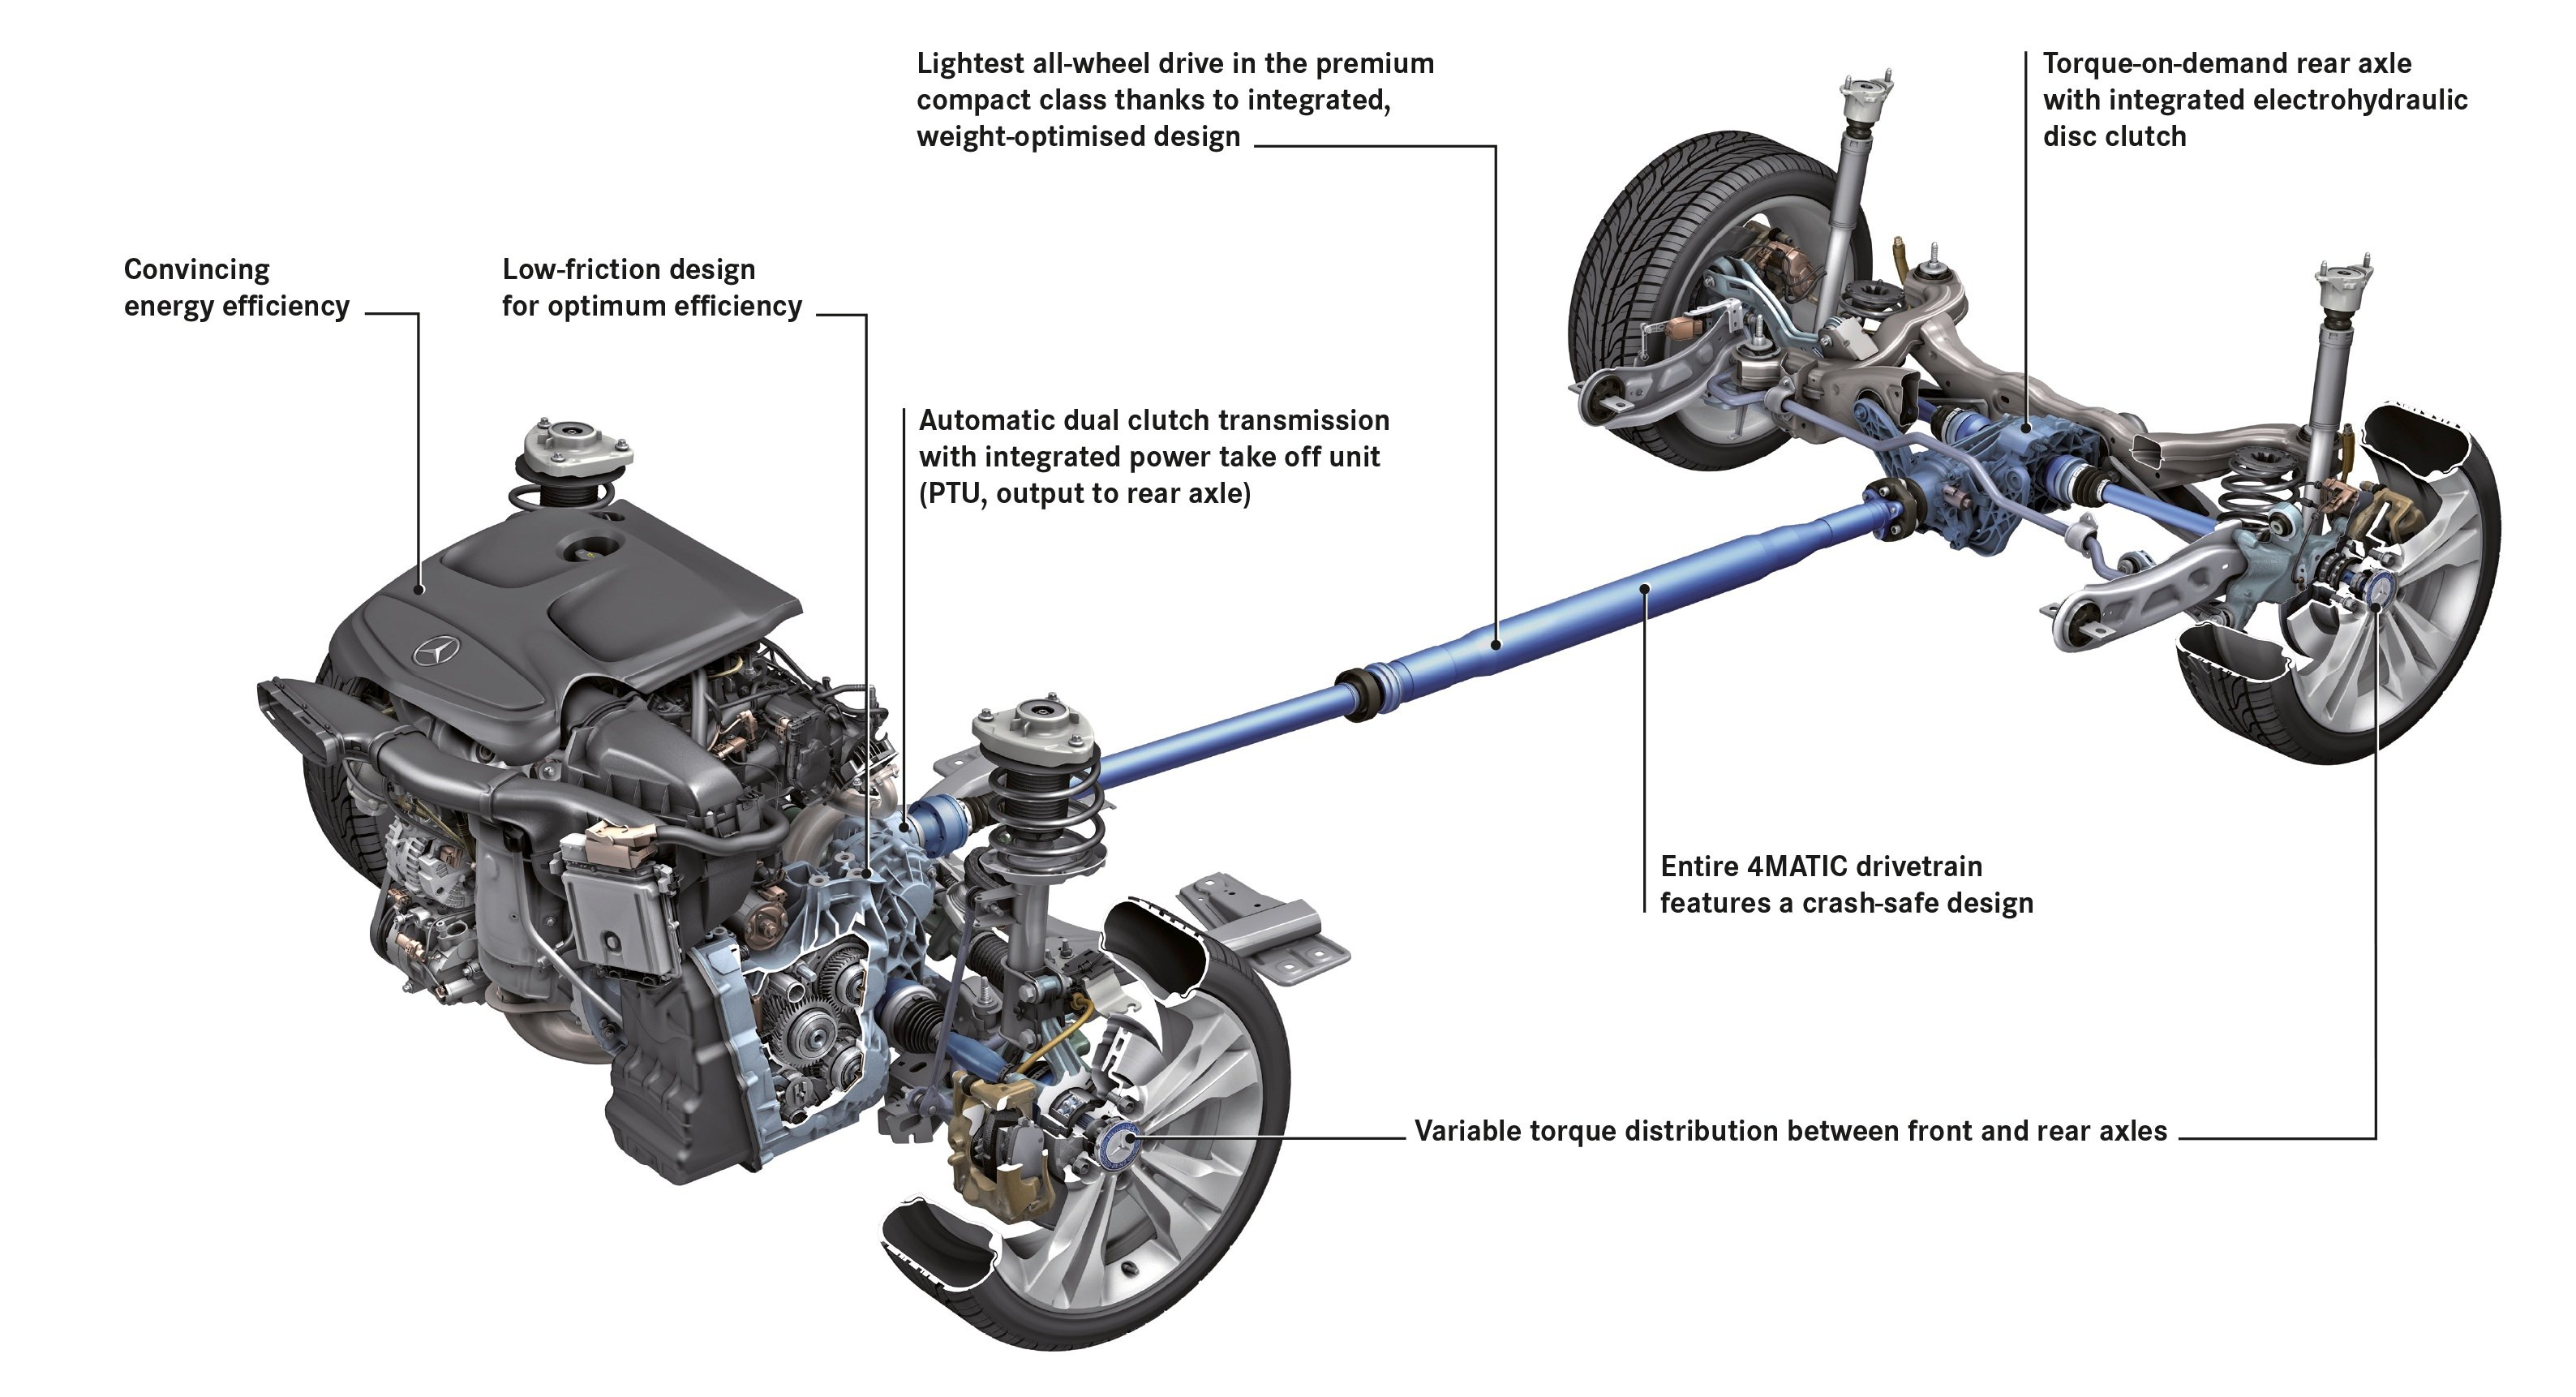 mercedes-benz cla gets new all-wheel-drive system - photos ... vw awd diagram 67 vw wiring diagram